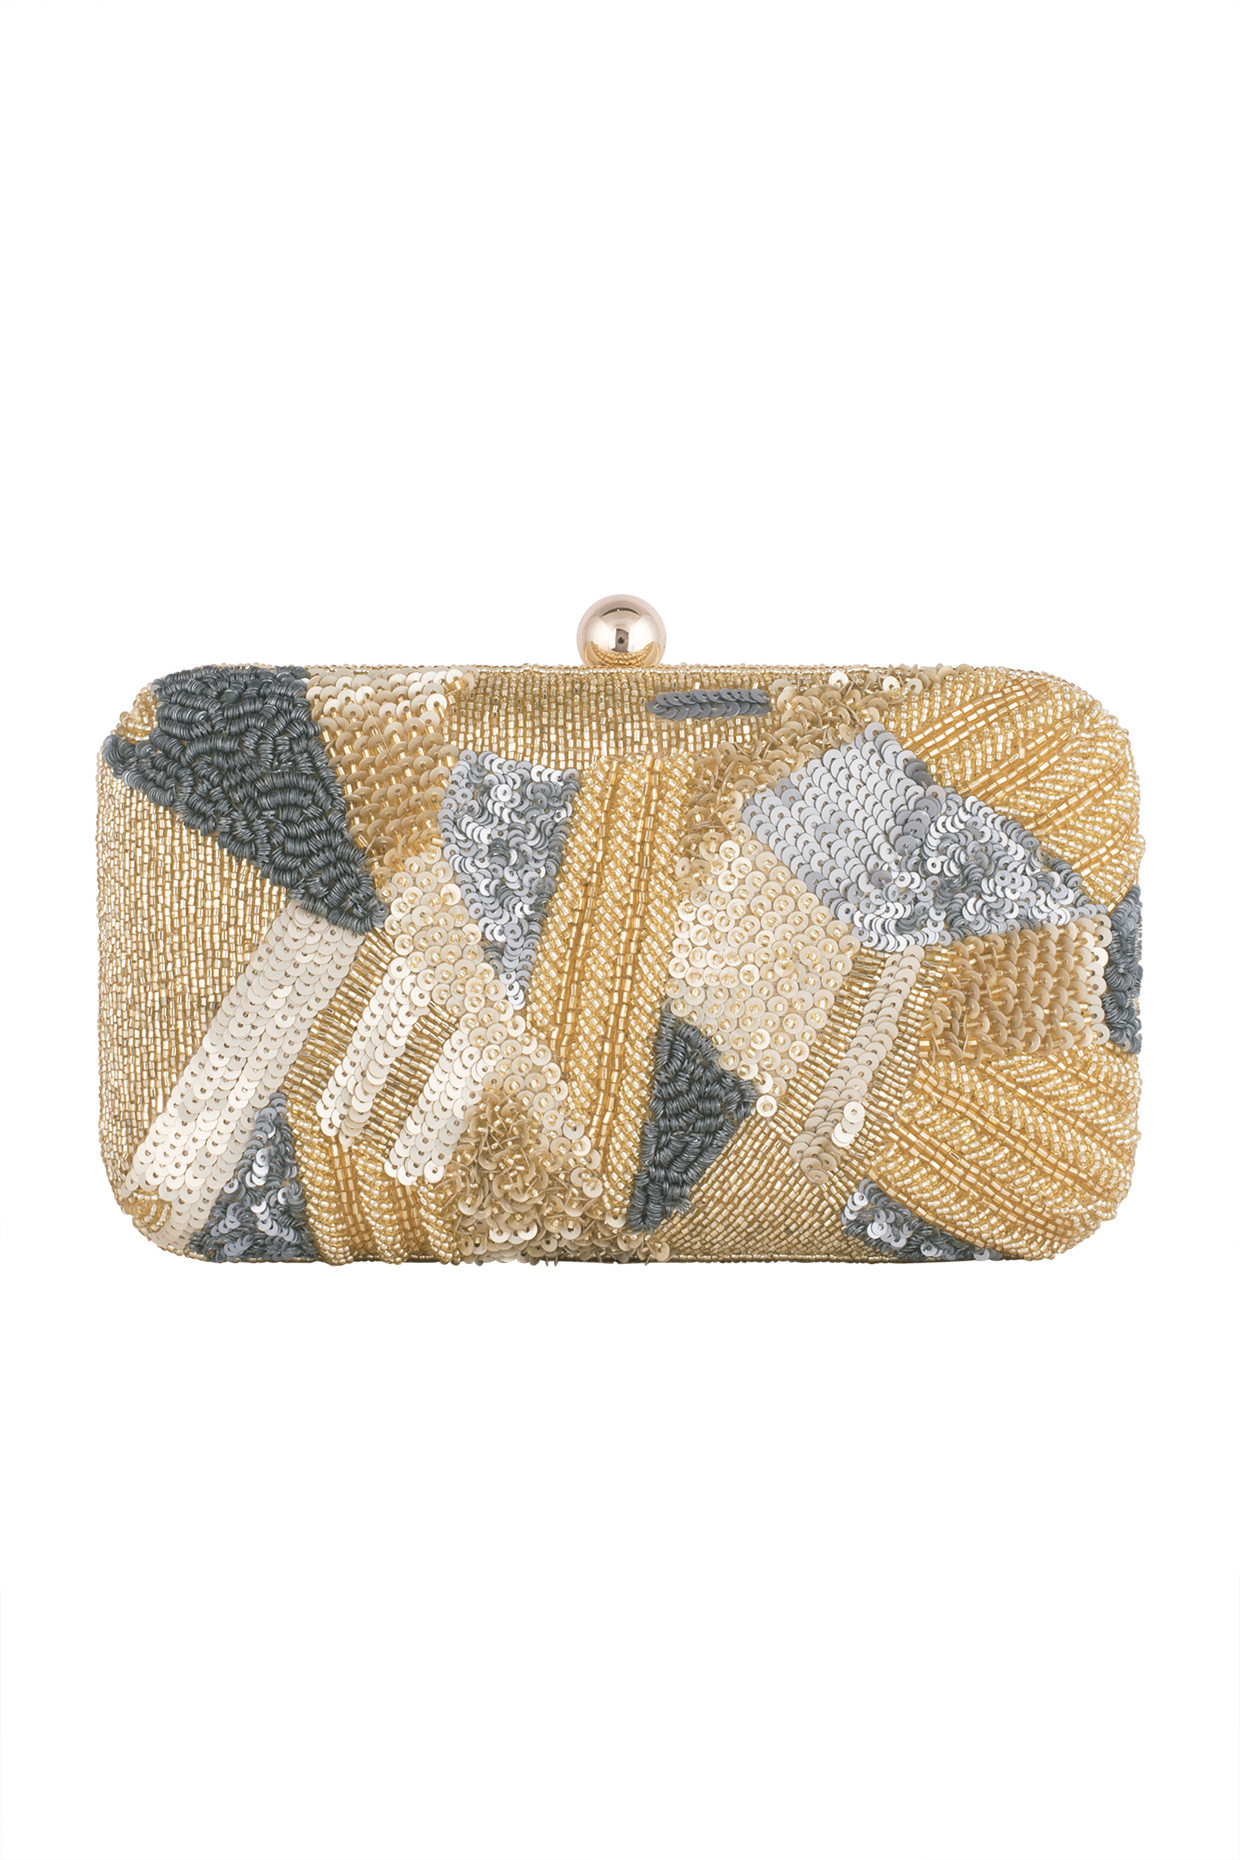 Gold Geometrical Embroidered Clutch by Sonnet